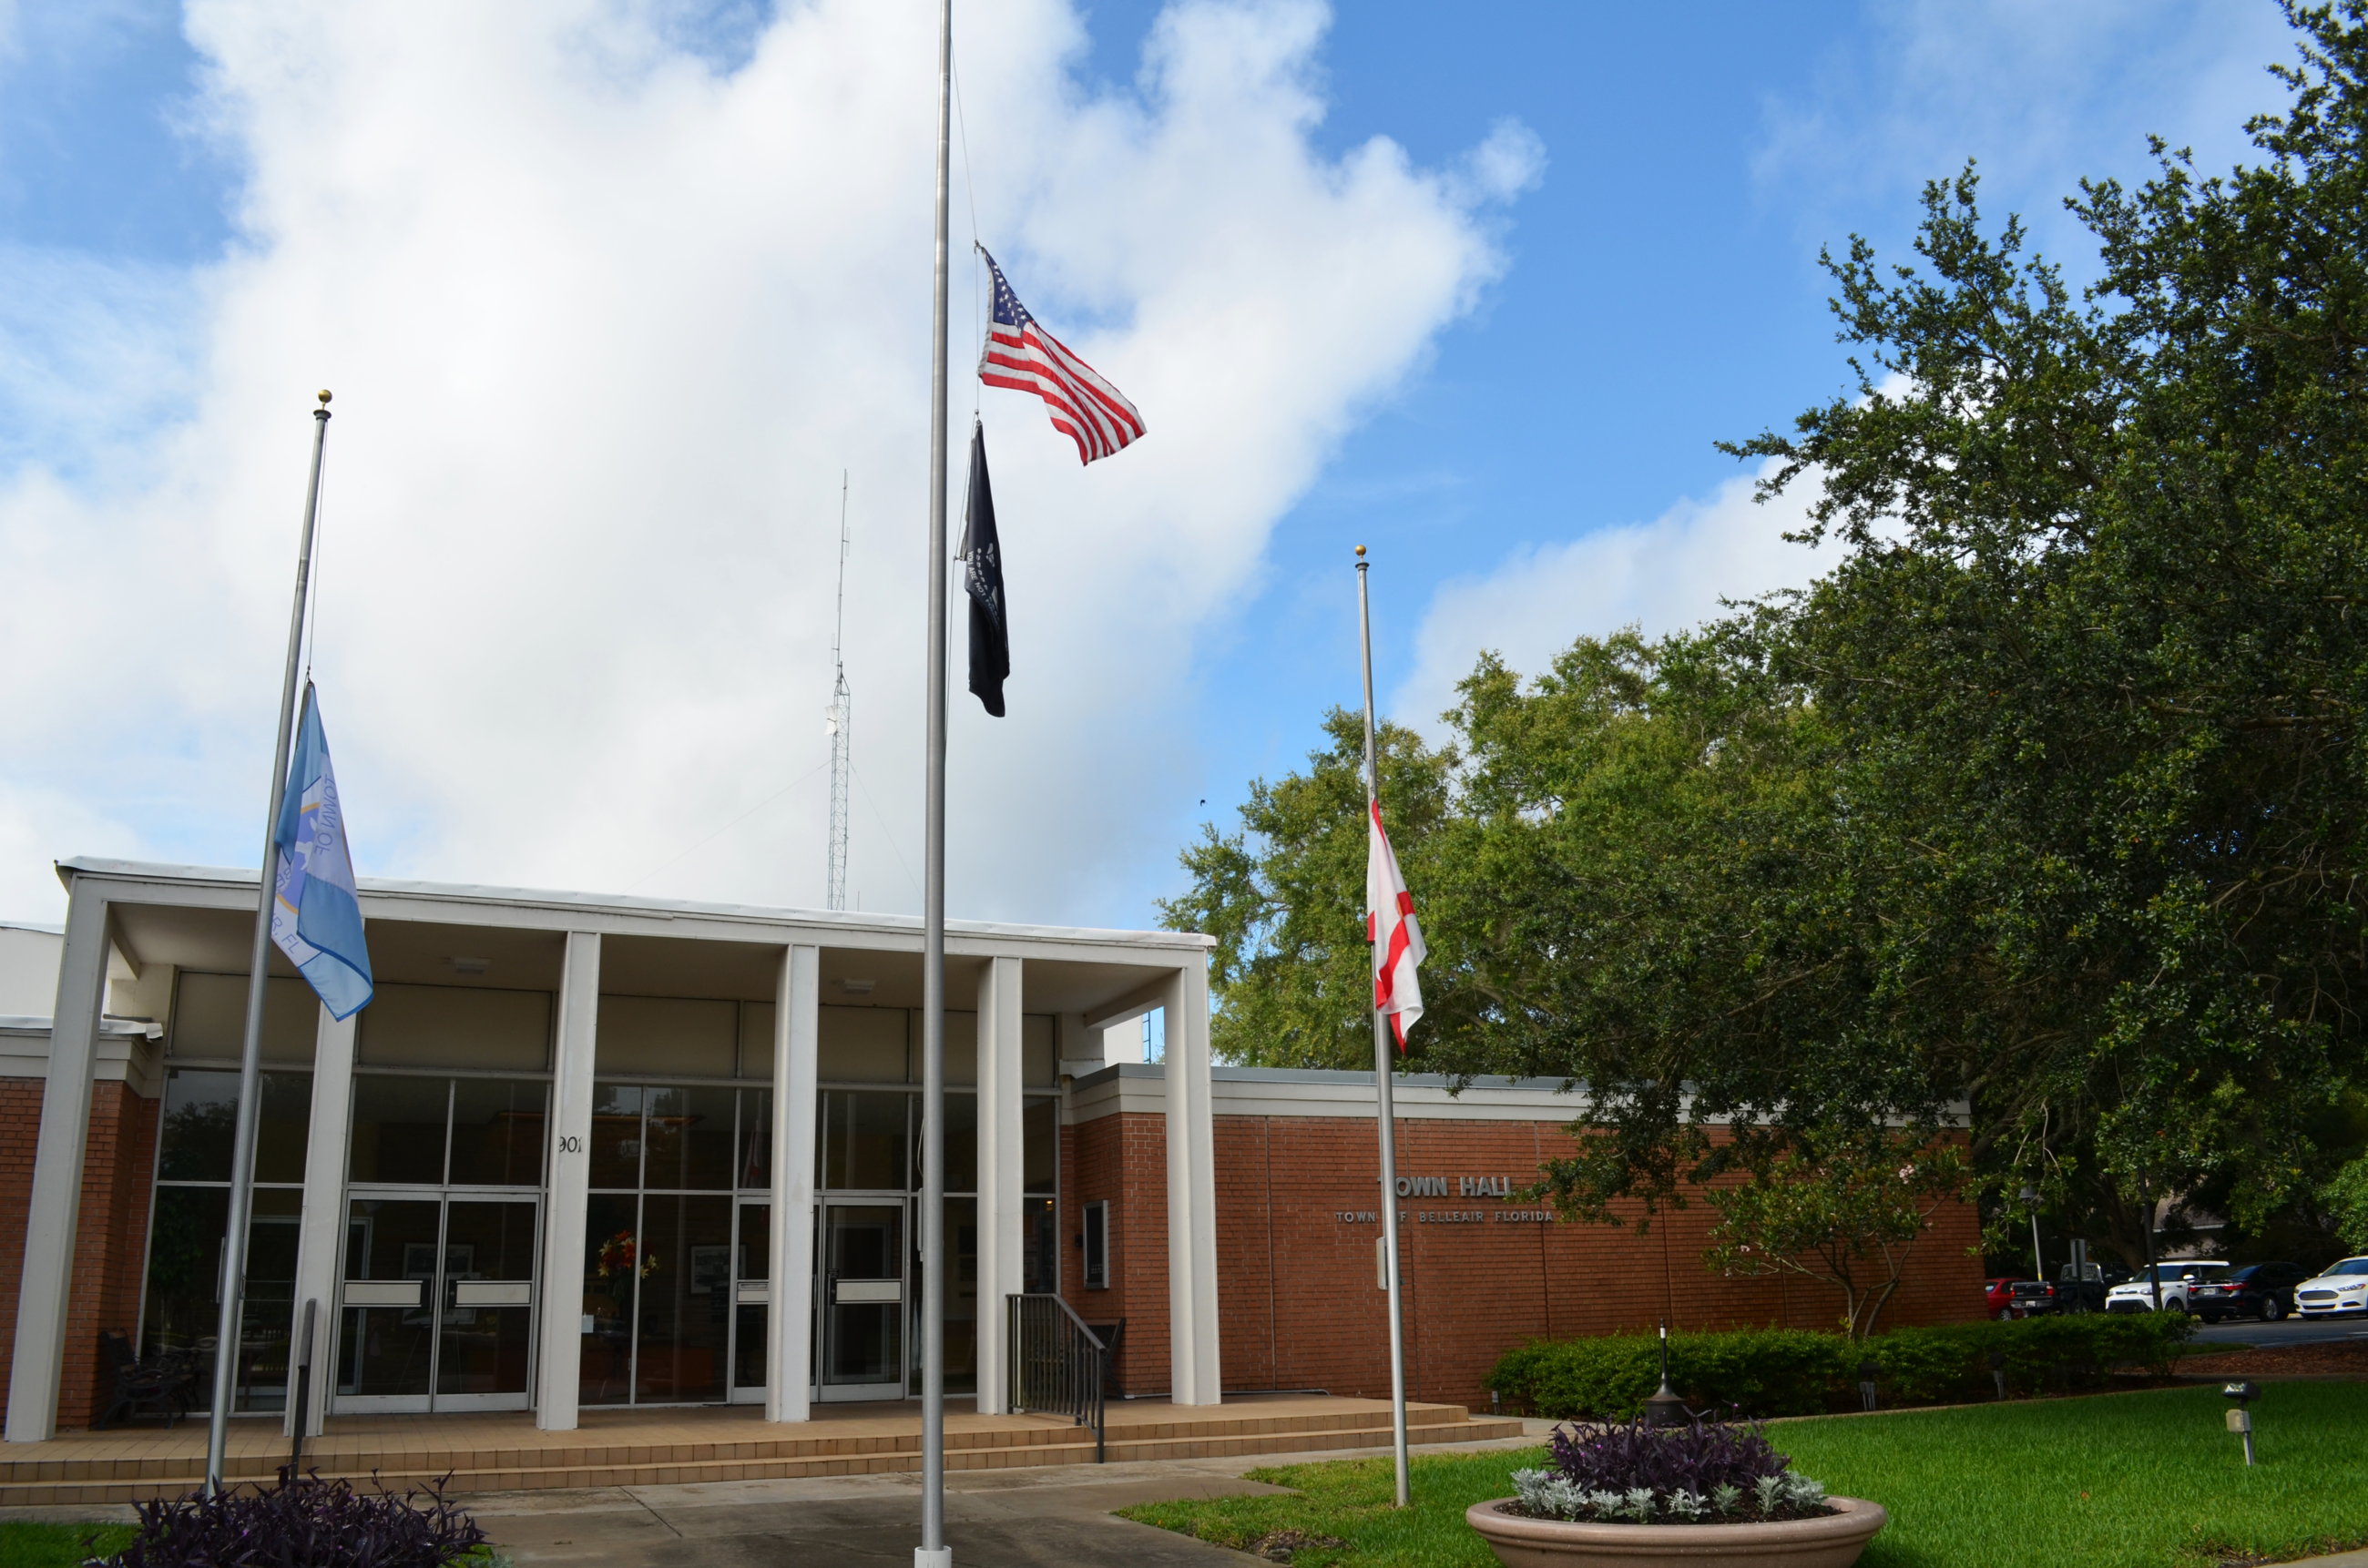 The front of Belleair&#39s Town Hall building with flags at half staff.